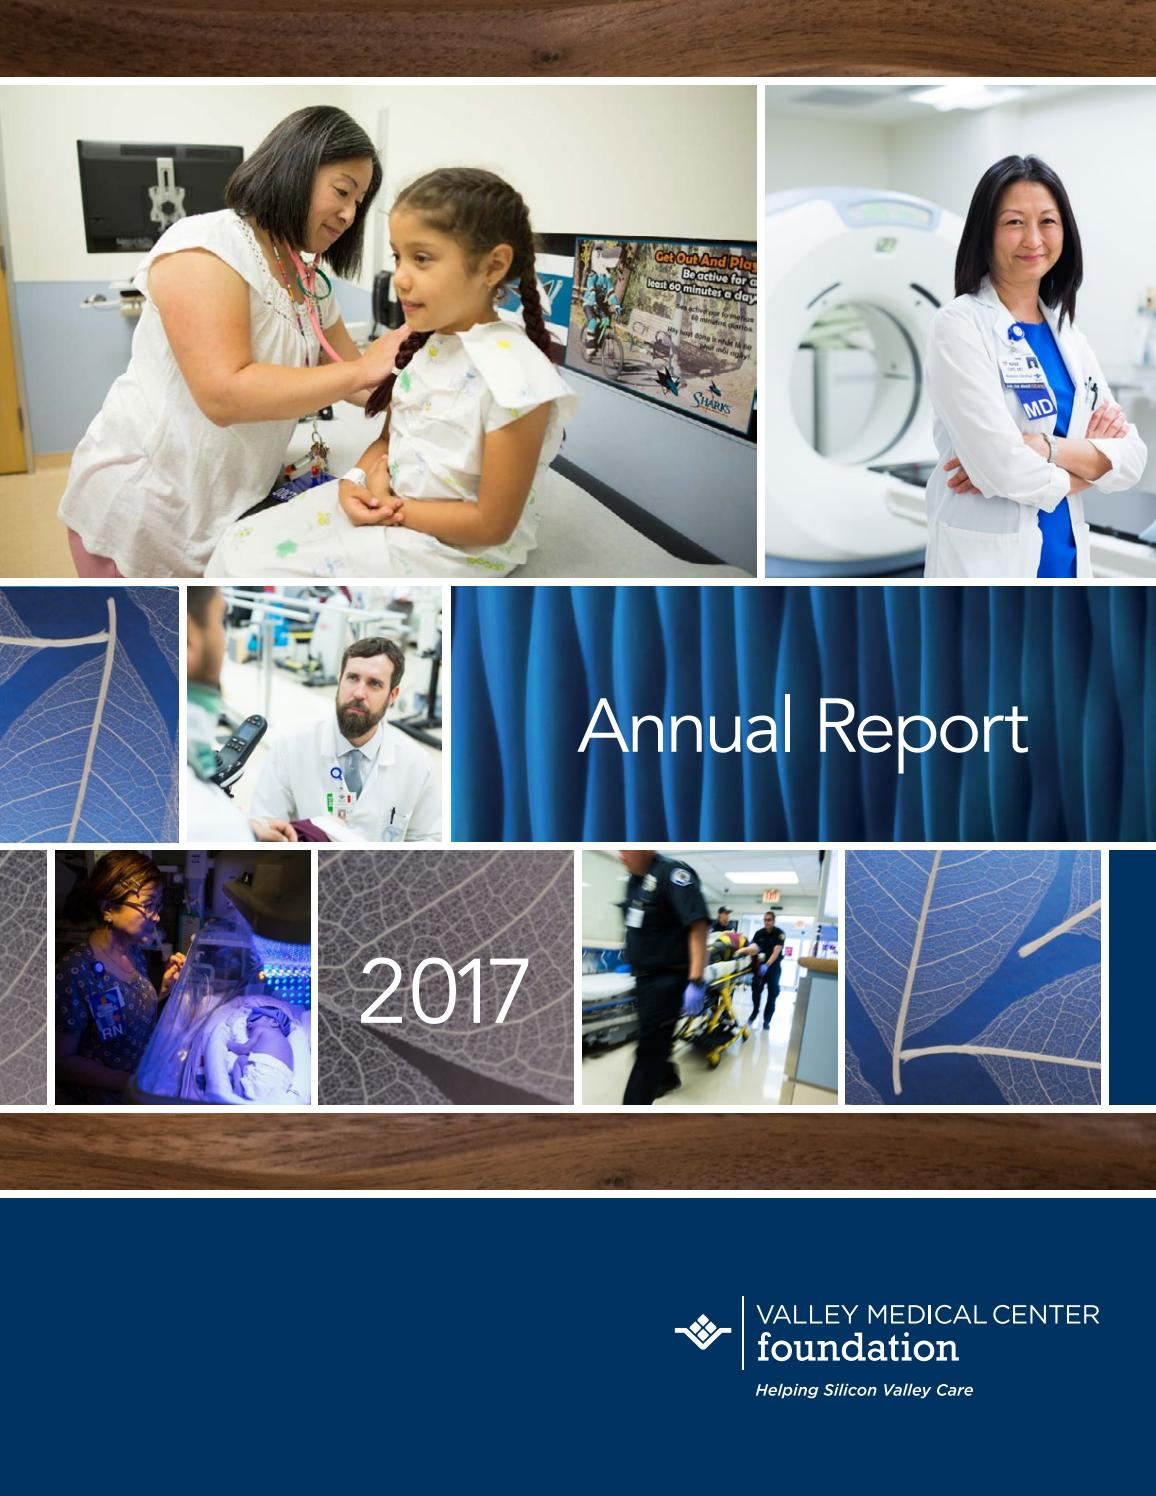 Annual Report 2017 by Michael Elliott - issuu